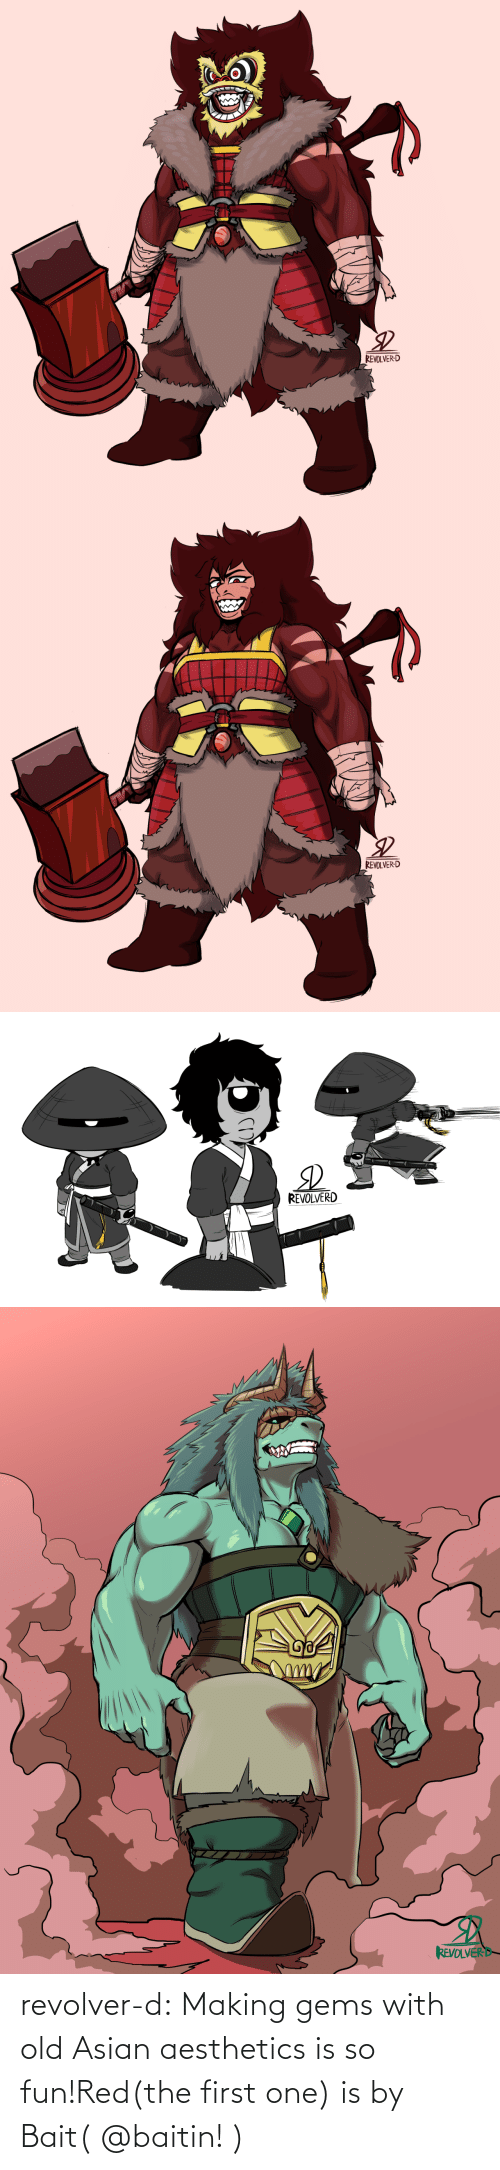 revolver: revolver-d:  Making gems with old Asian aesthetics is so fun!Red(the first one) is by Bait( @baitin! )